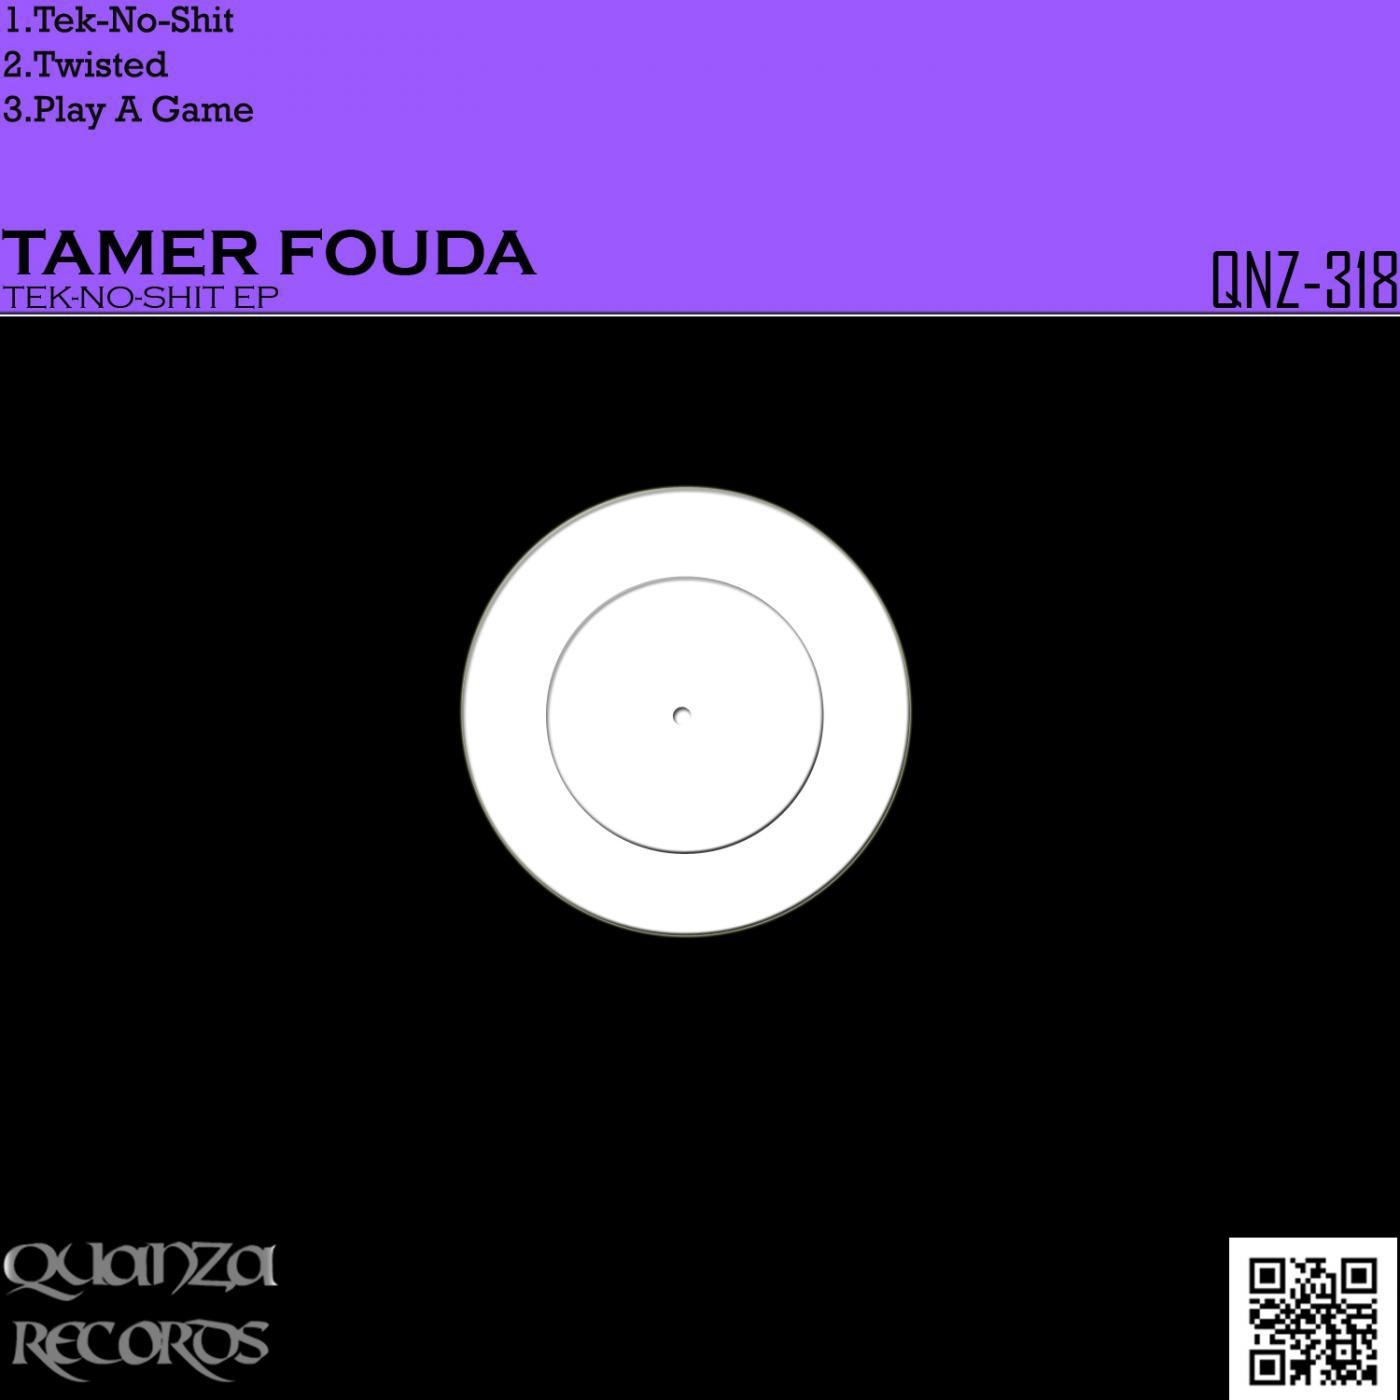 Tamer Fouda - Tek-No-Shit (Original Mix)